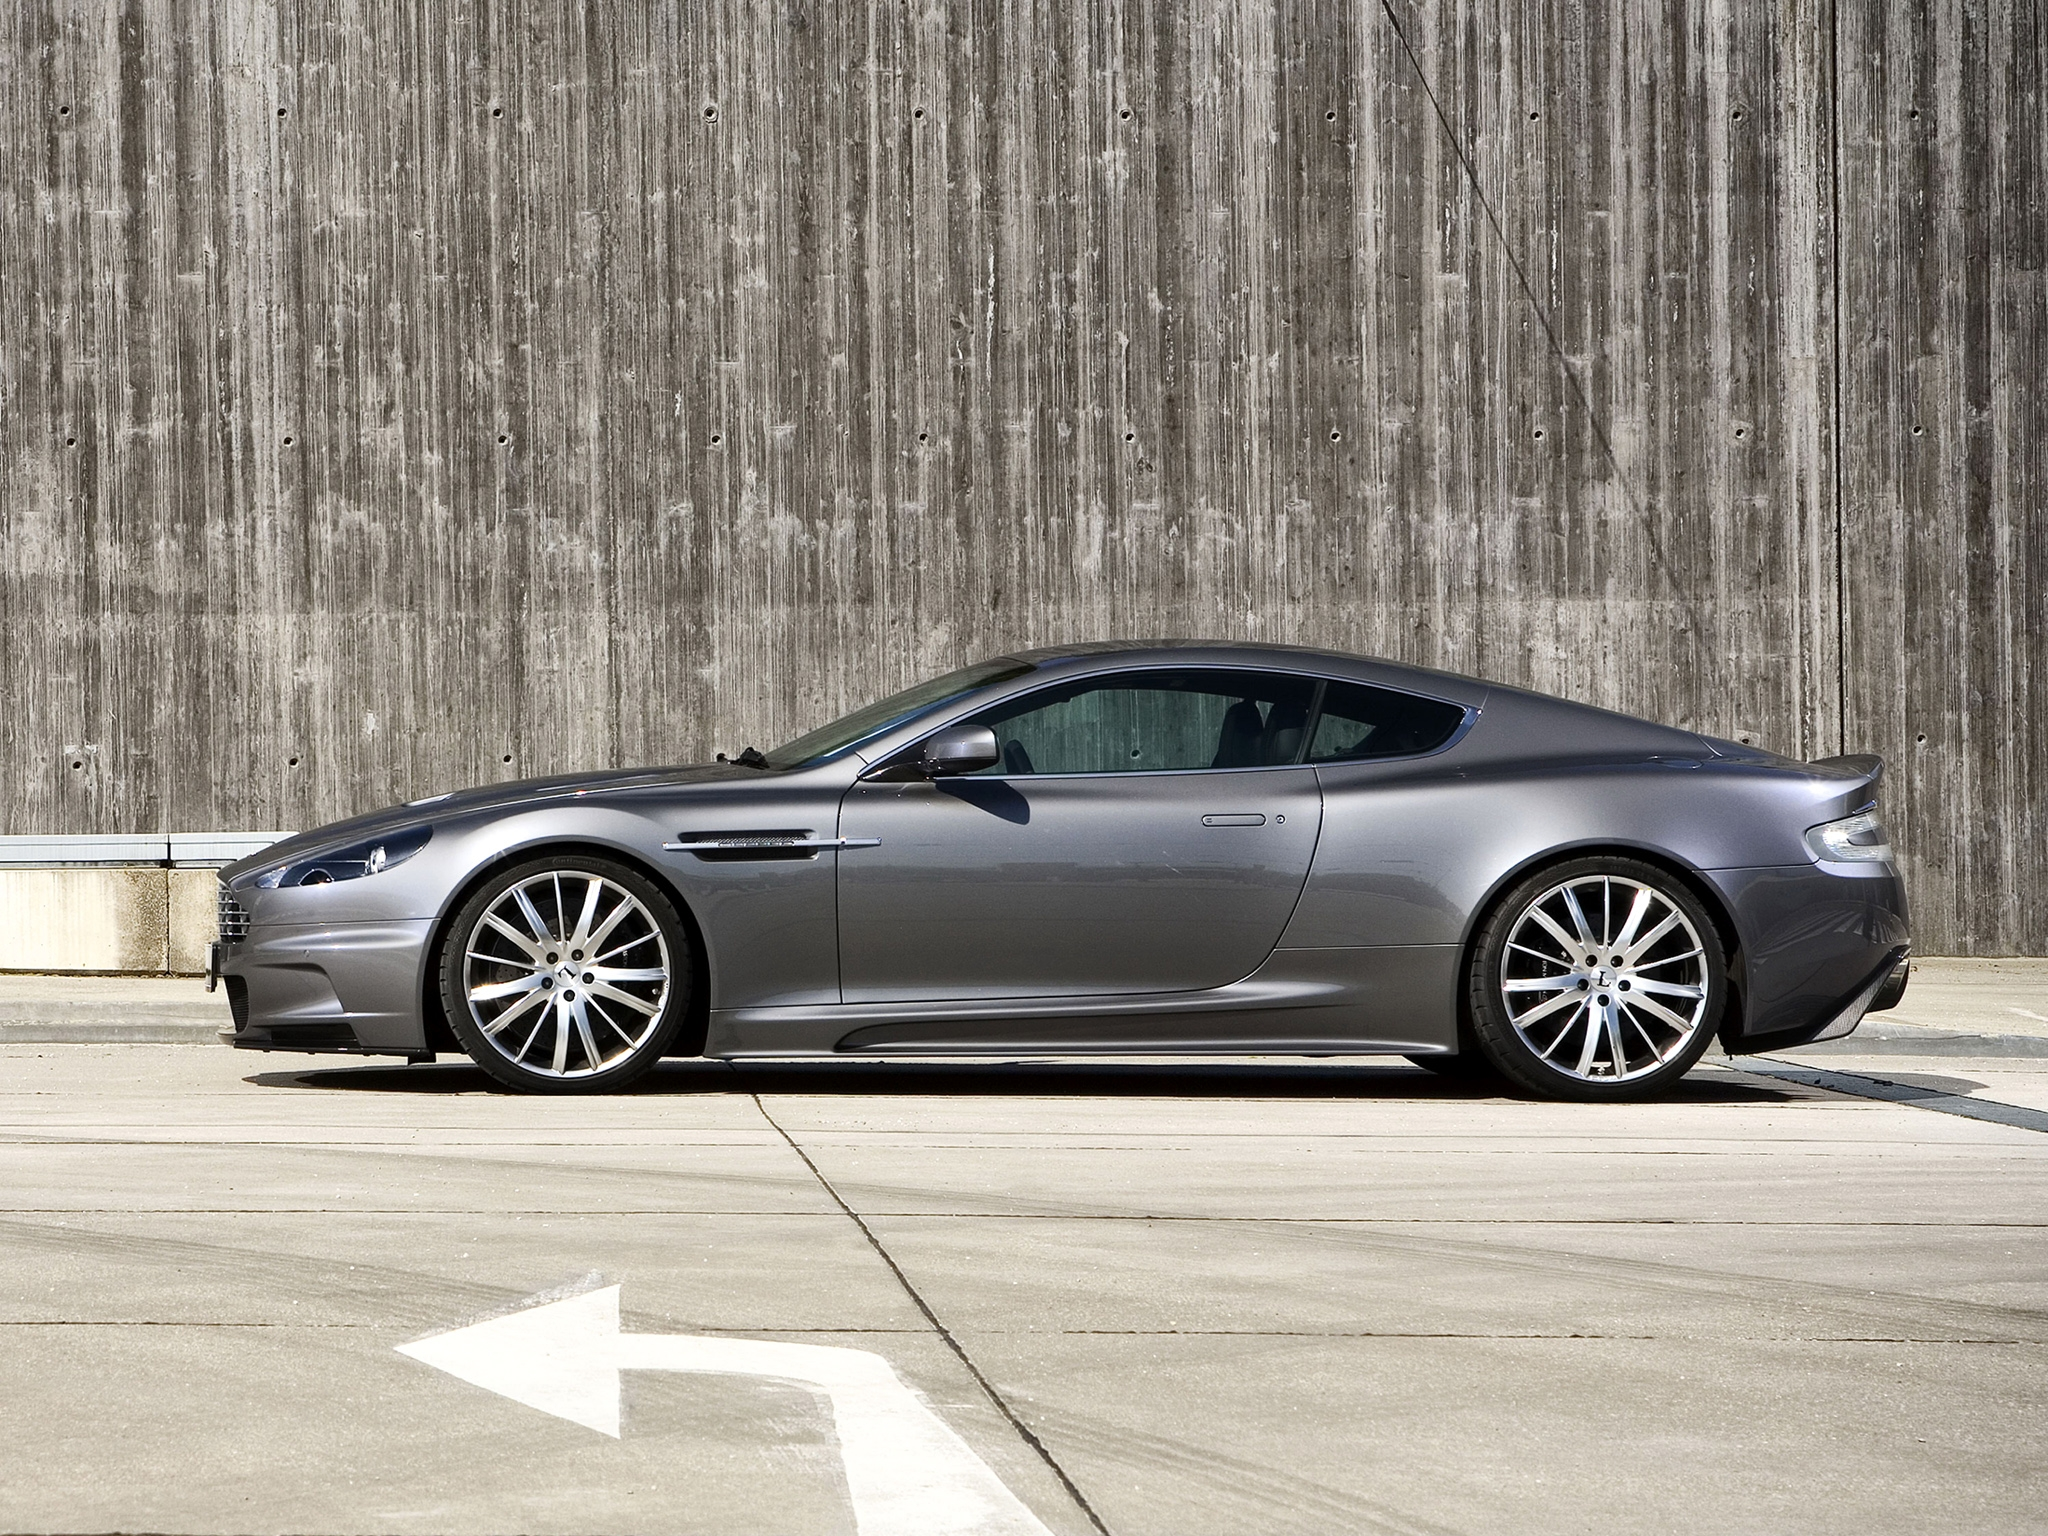 Download Wallpaper 2048x1536 Aston Martin Dbs 2009 Gray Side View Auto Hd Background